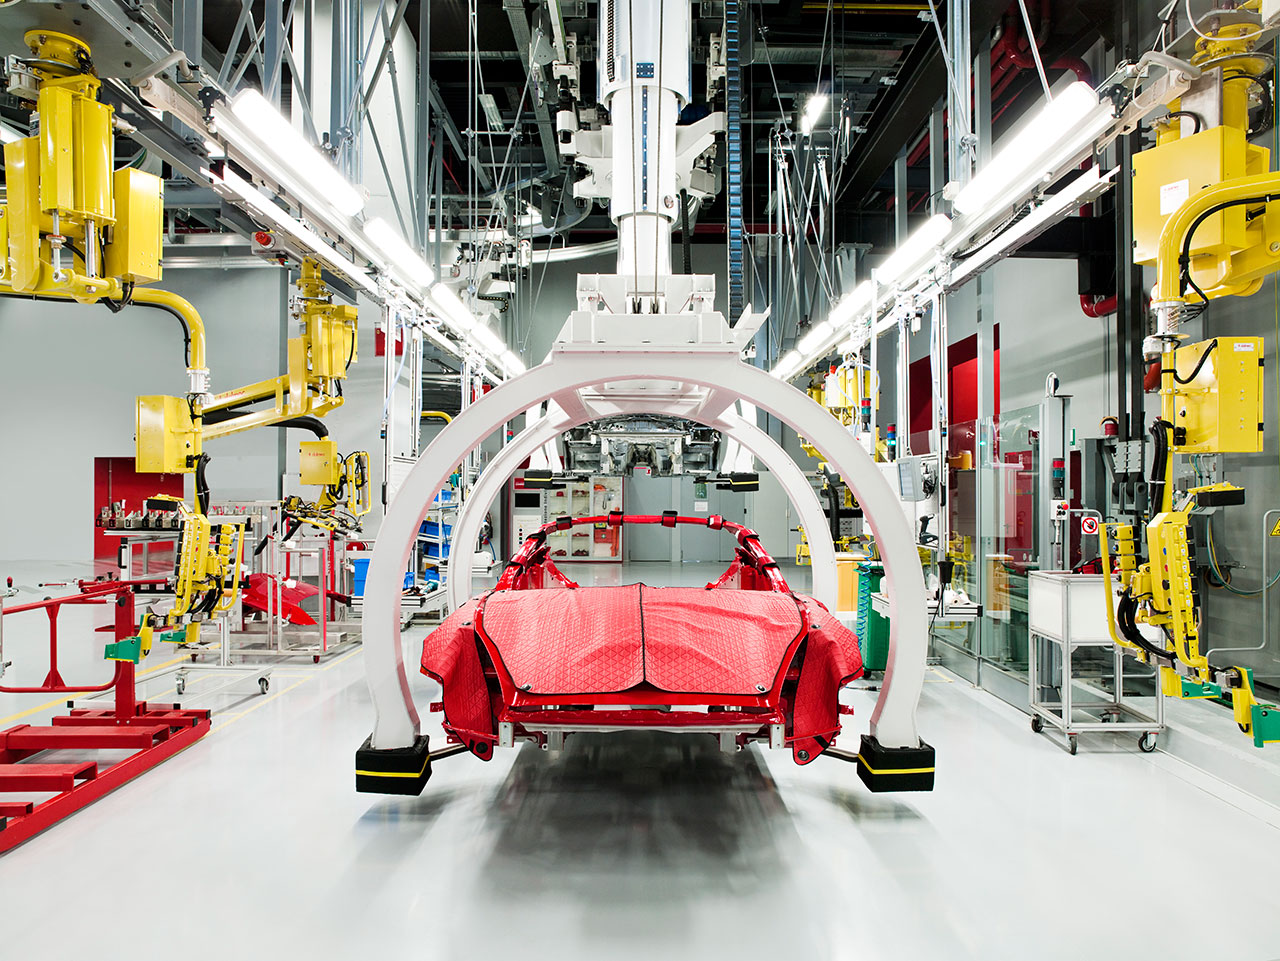 Present Day Manufacturing of the Ferrari California car. Photo courtesy of Ferrari.